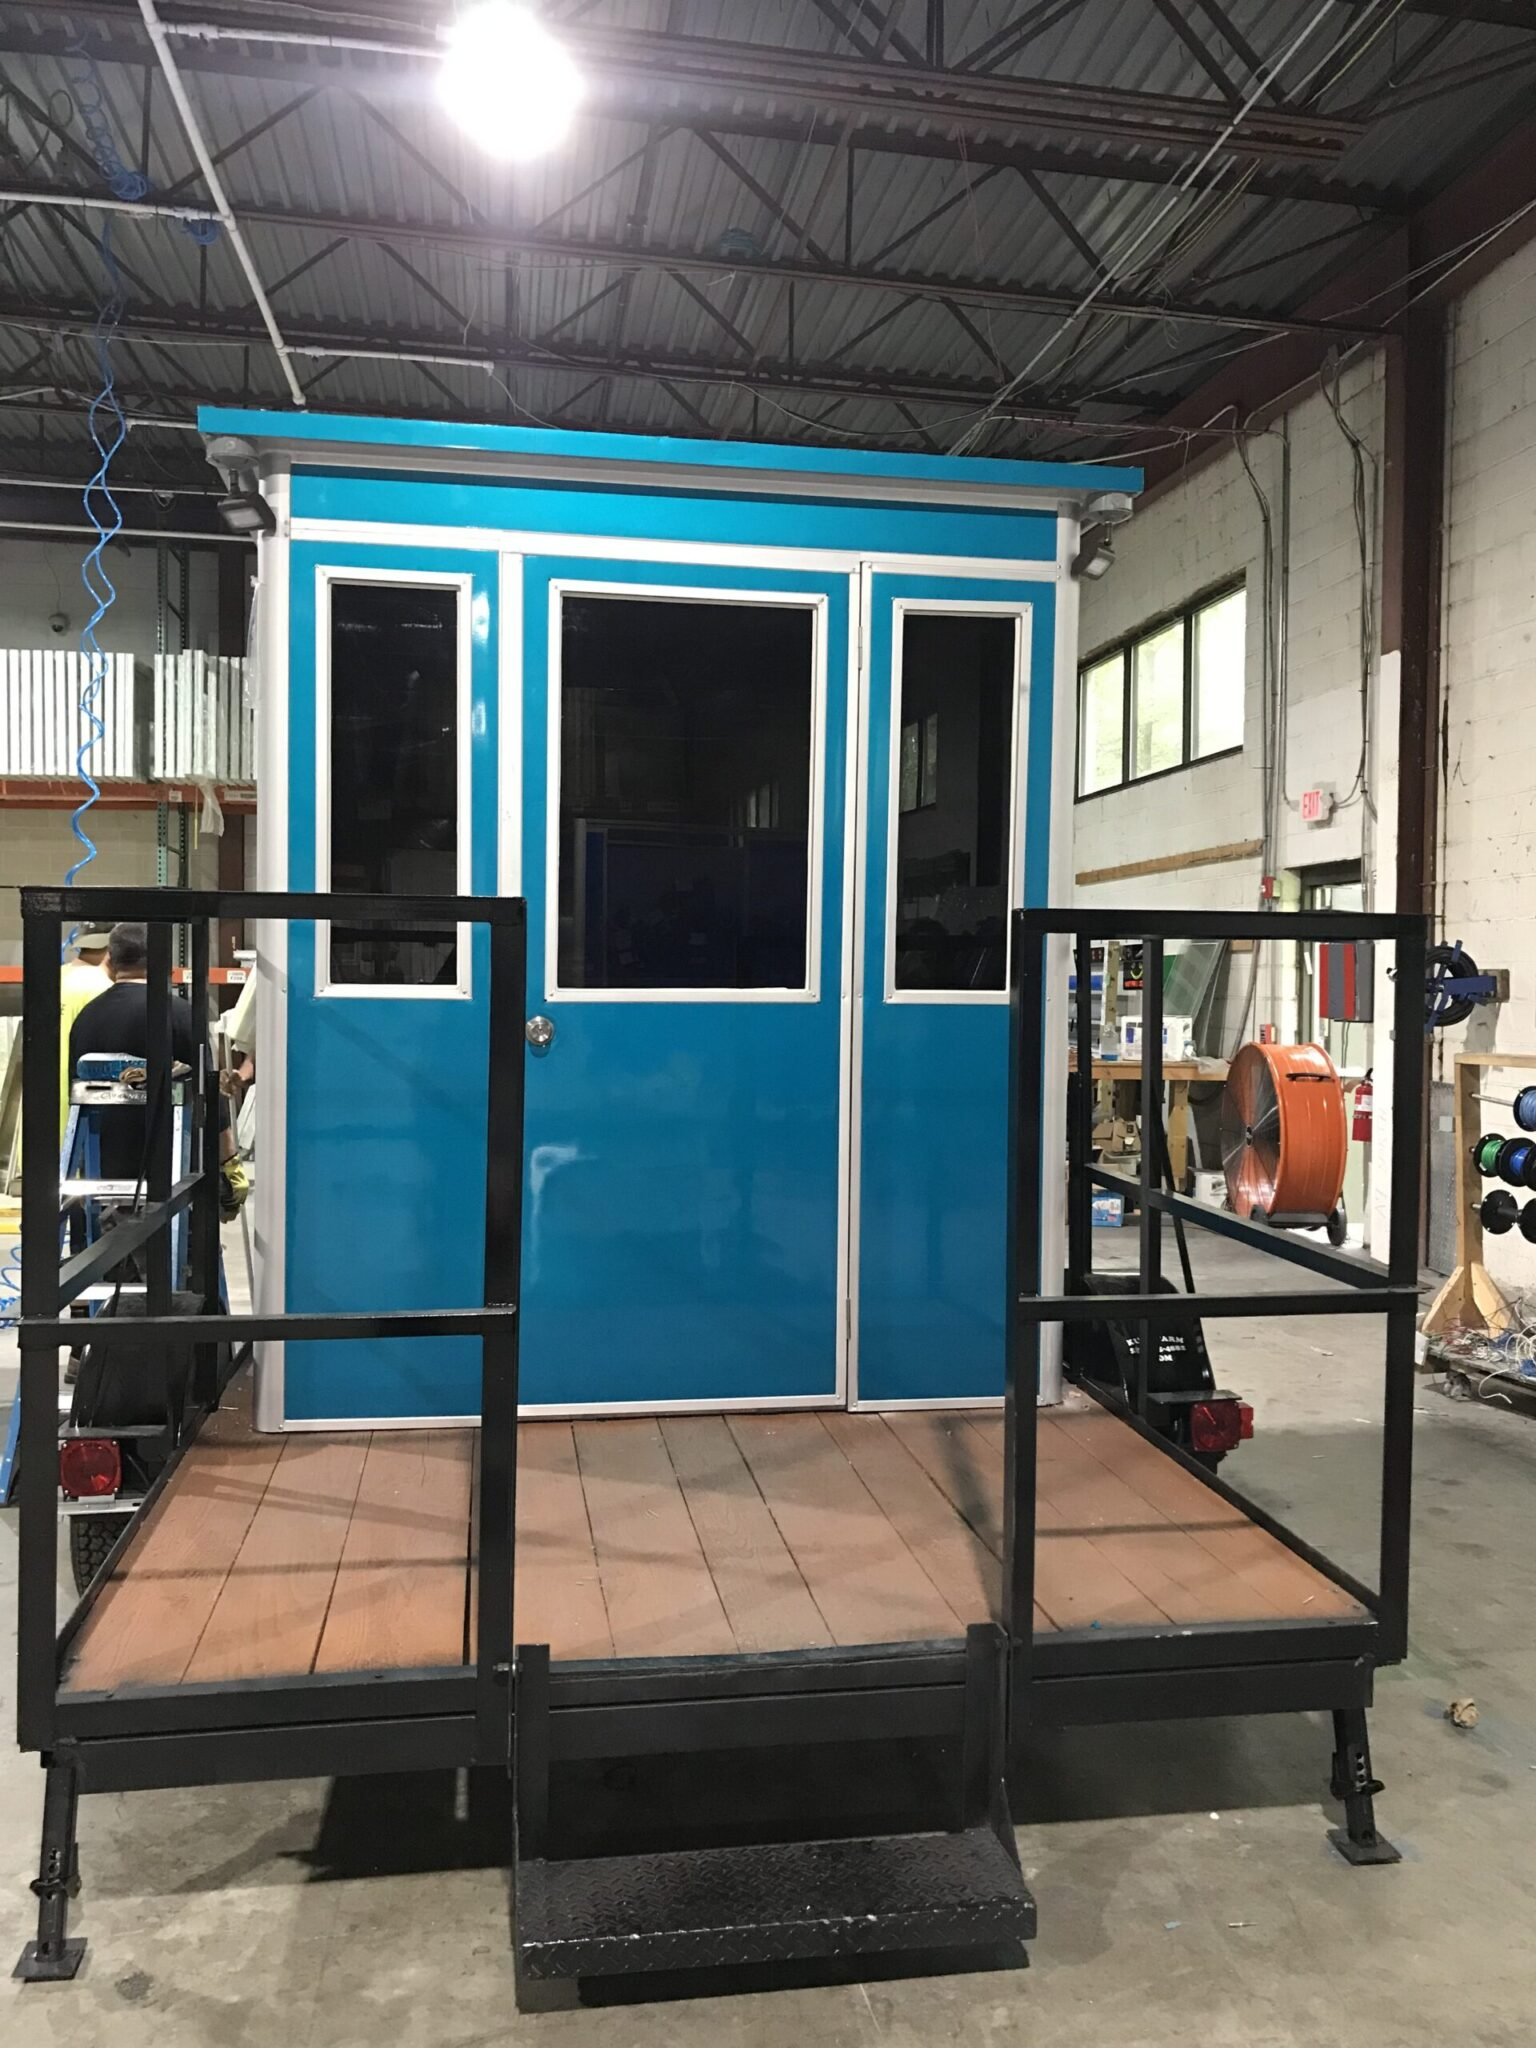 6x6 Trailer Booth in Chalk River, Ontario with Tinted Windows, Generator, Outside Spotlights, Custom Exterior Color, and Built-in AC